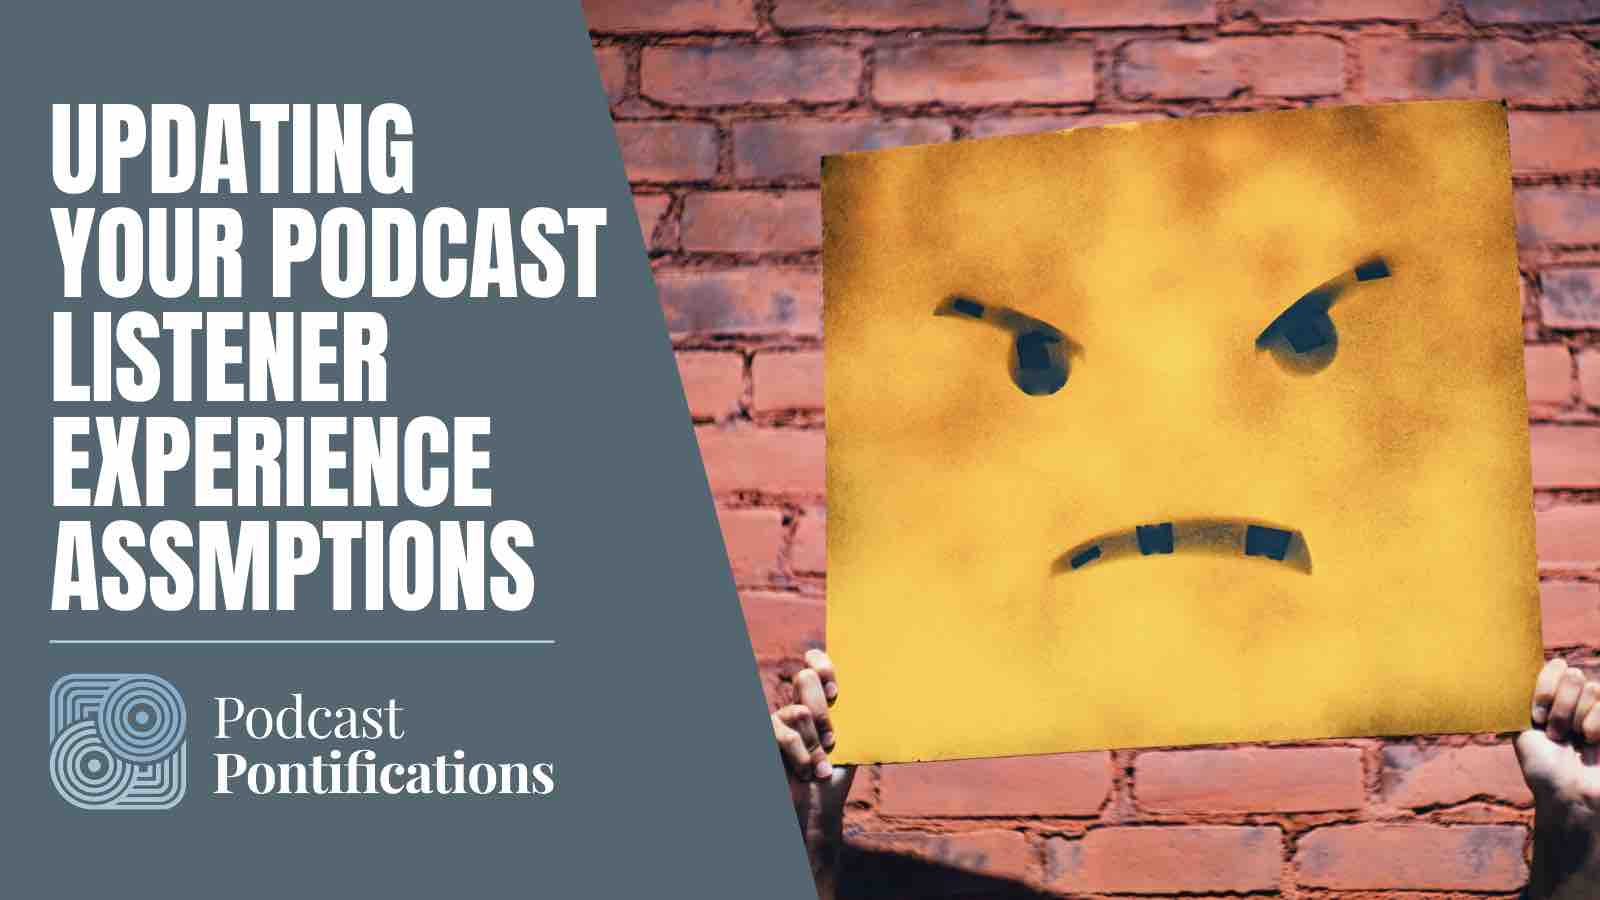 Updating Your Podcast Listener Experience Assumptions